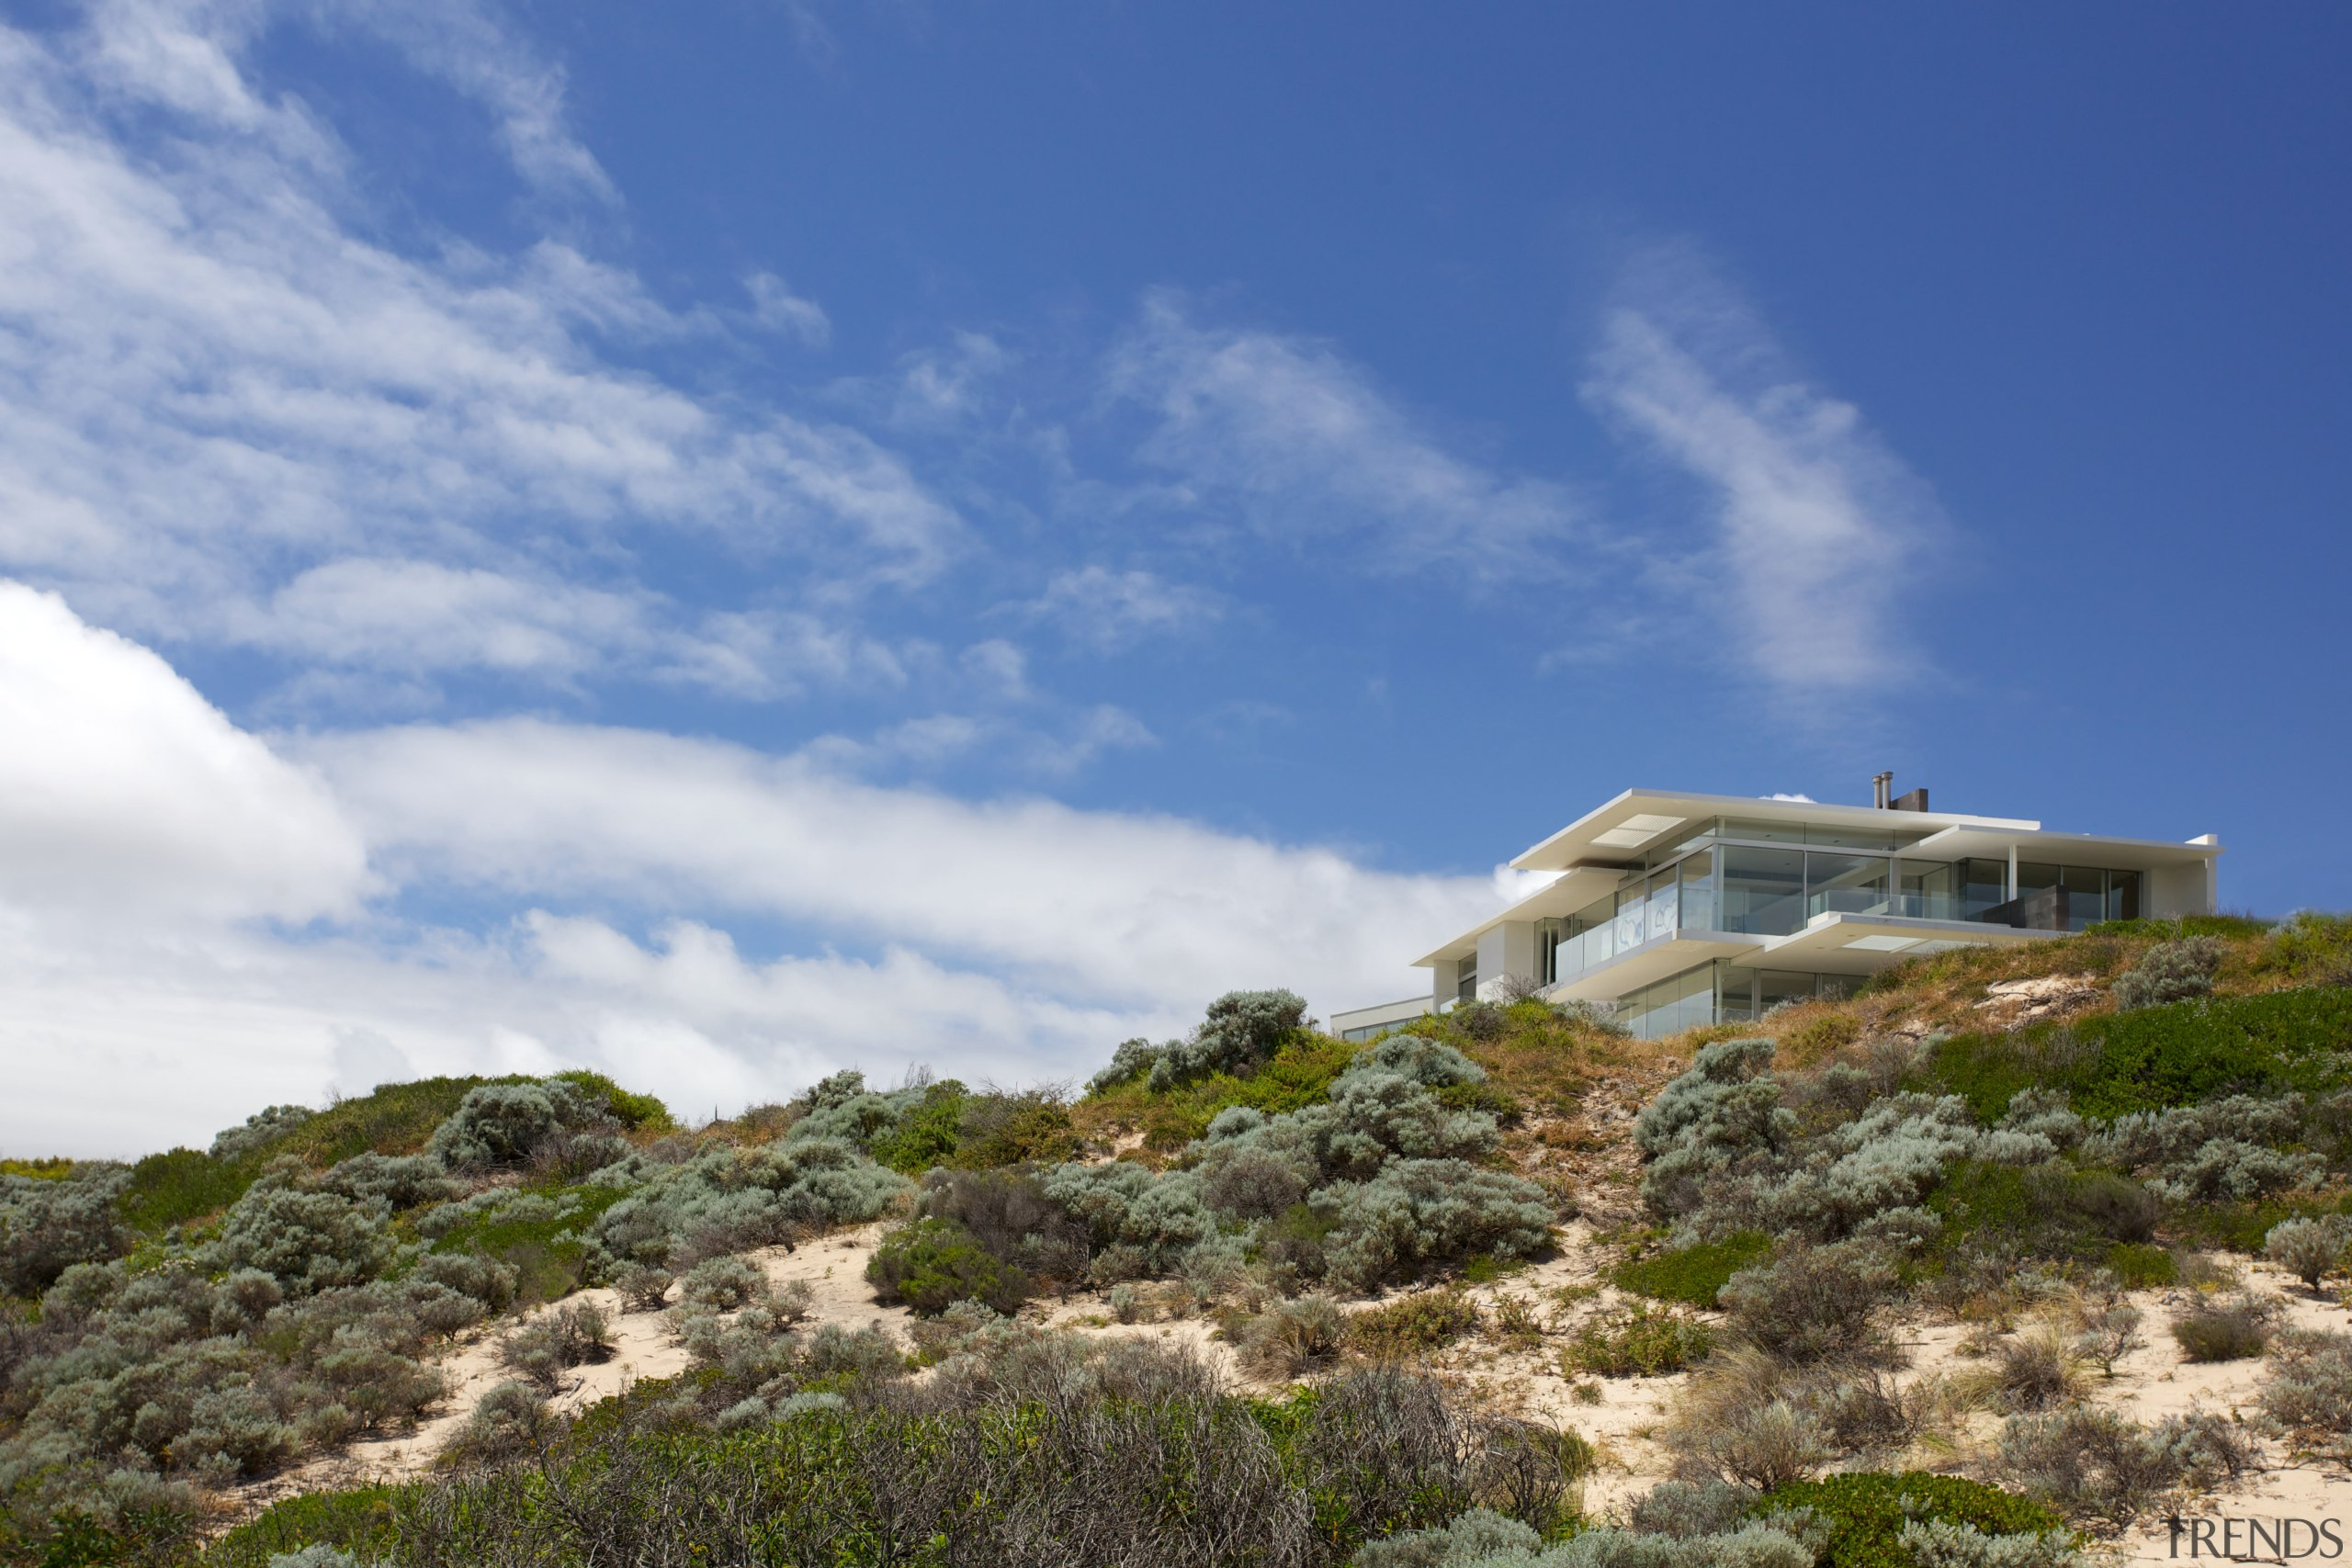 While the oceanside site provides a great outlook, cloud, coast, hill, house, mountain, plant community, real estate, shrubland, sky, terrain, blue